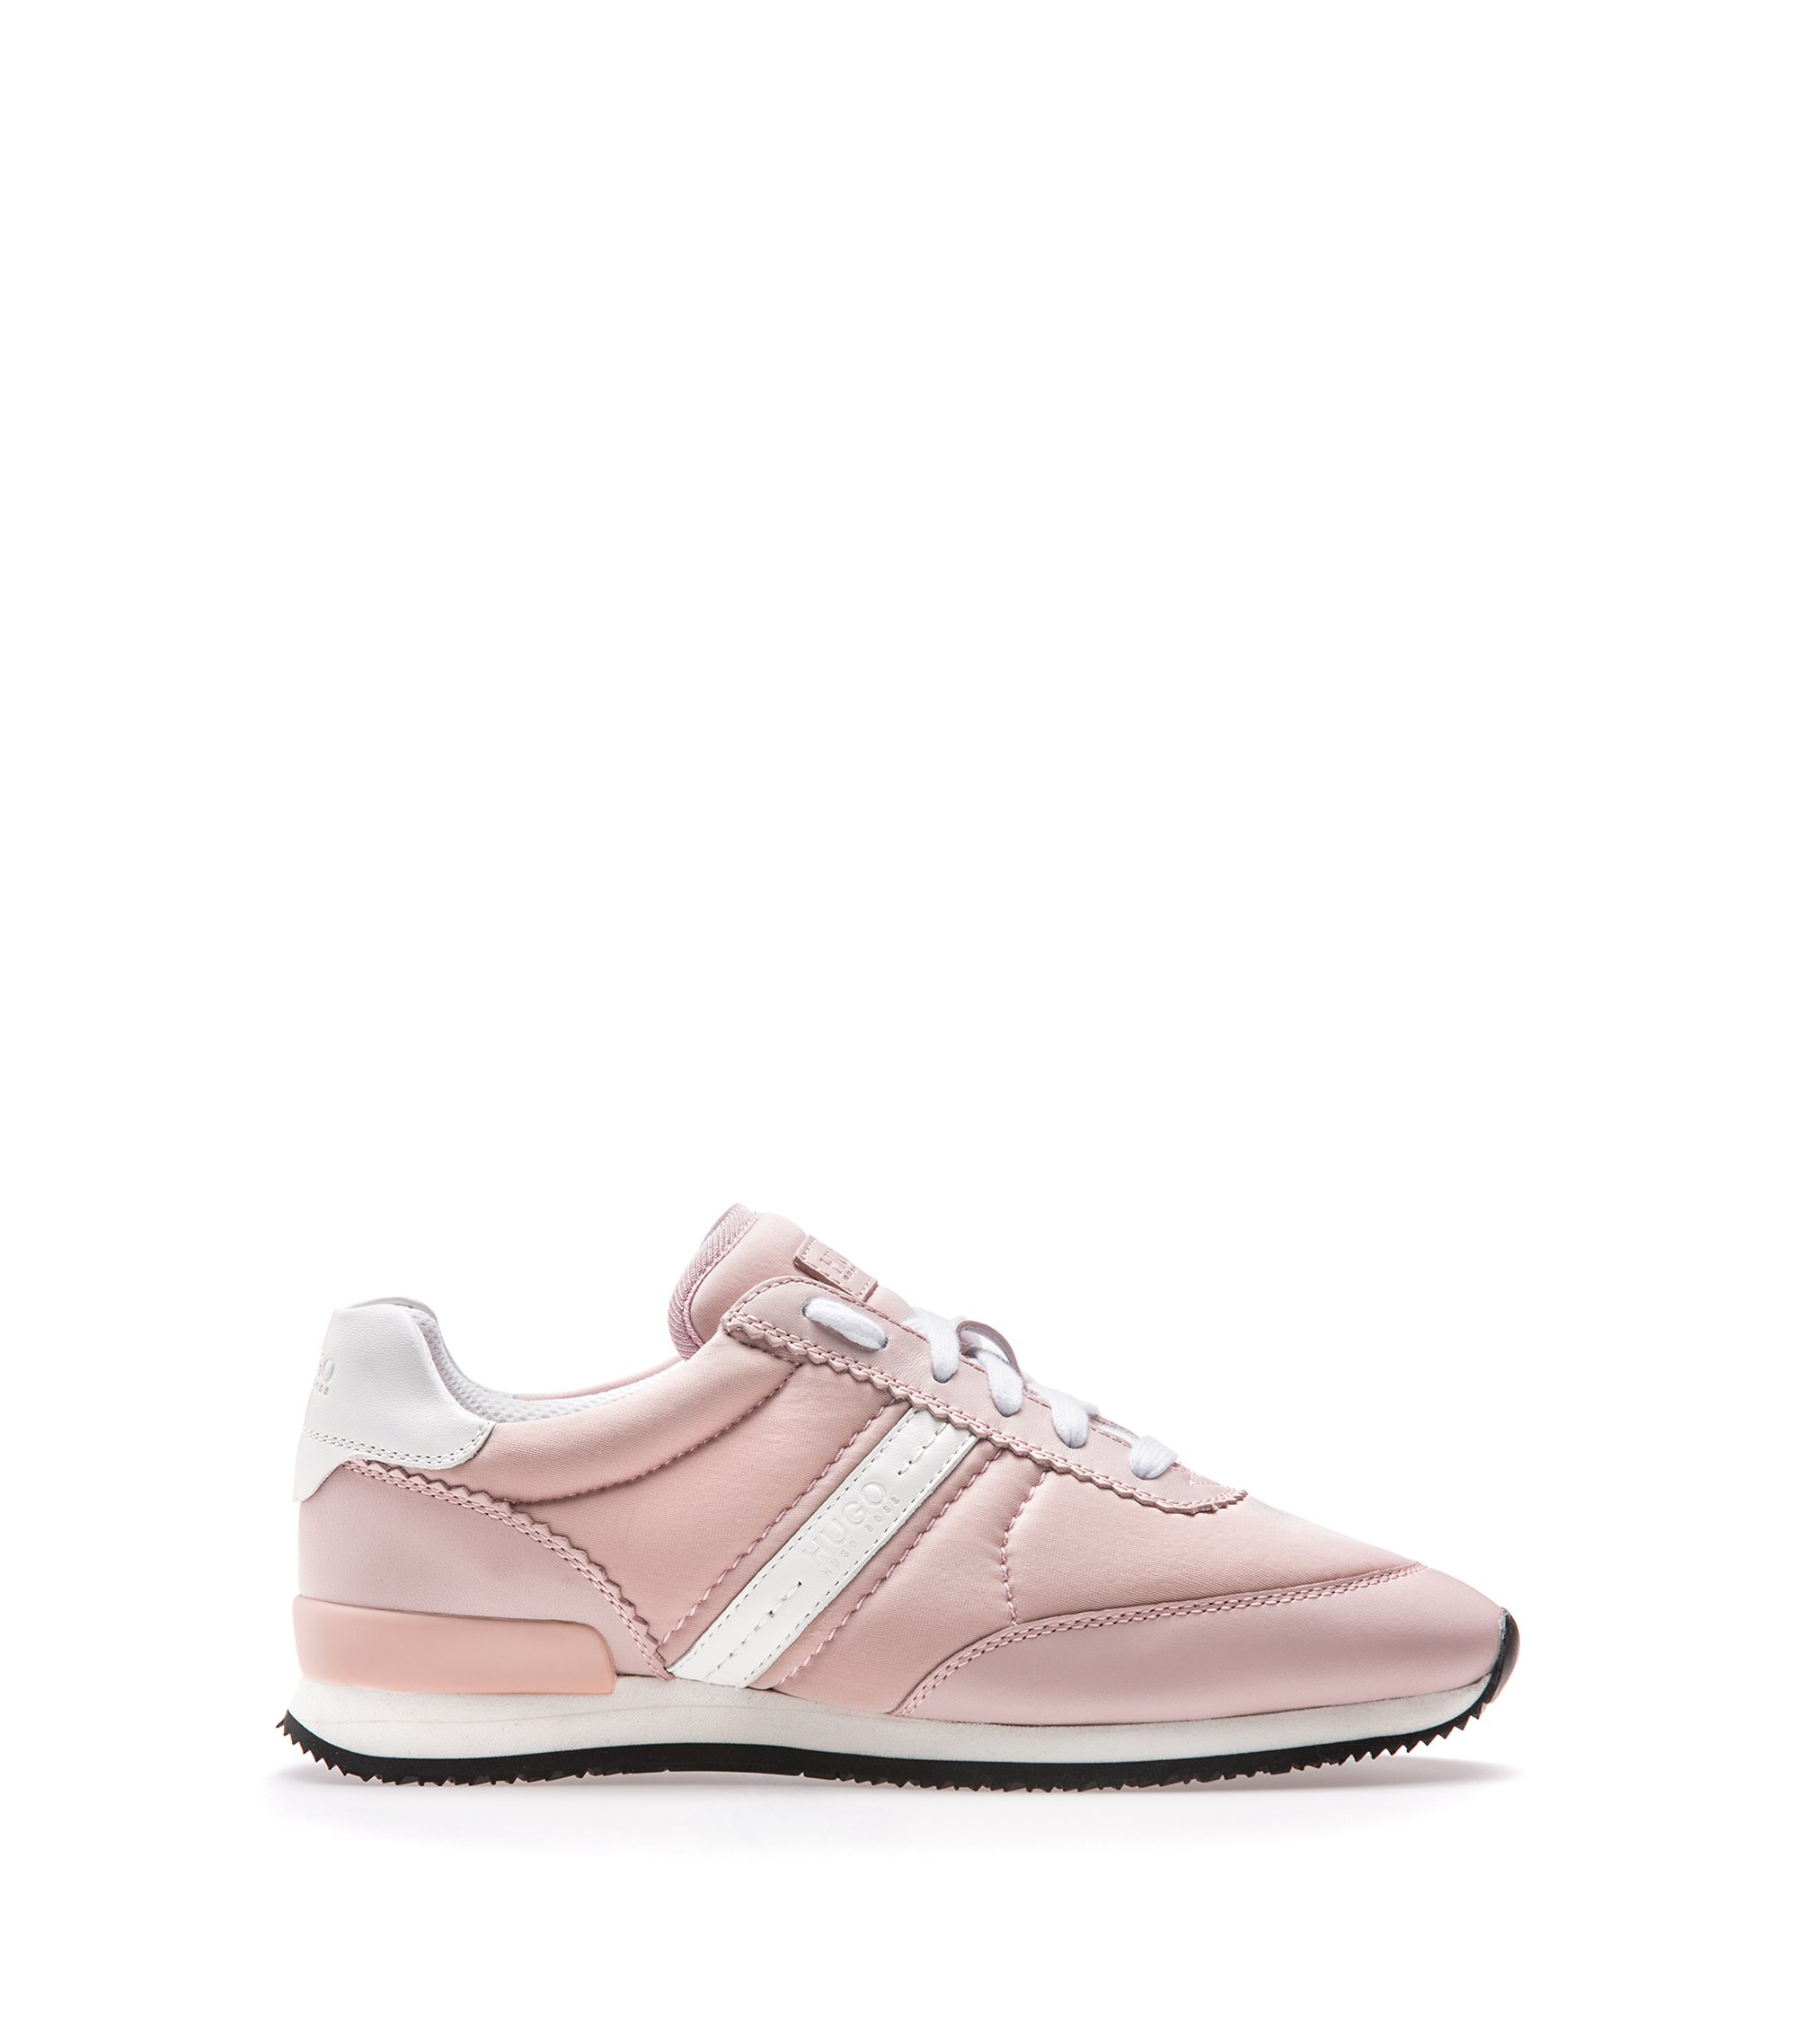 Low-top trainers with suede panels, light pink